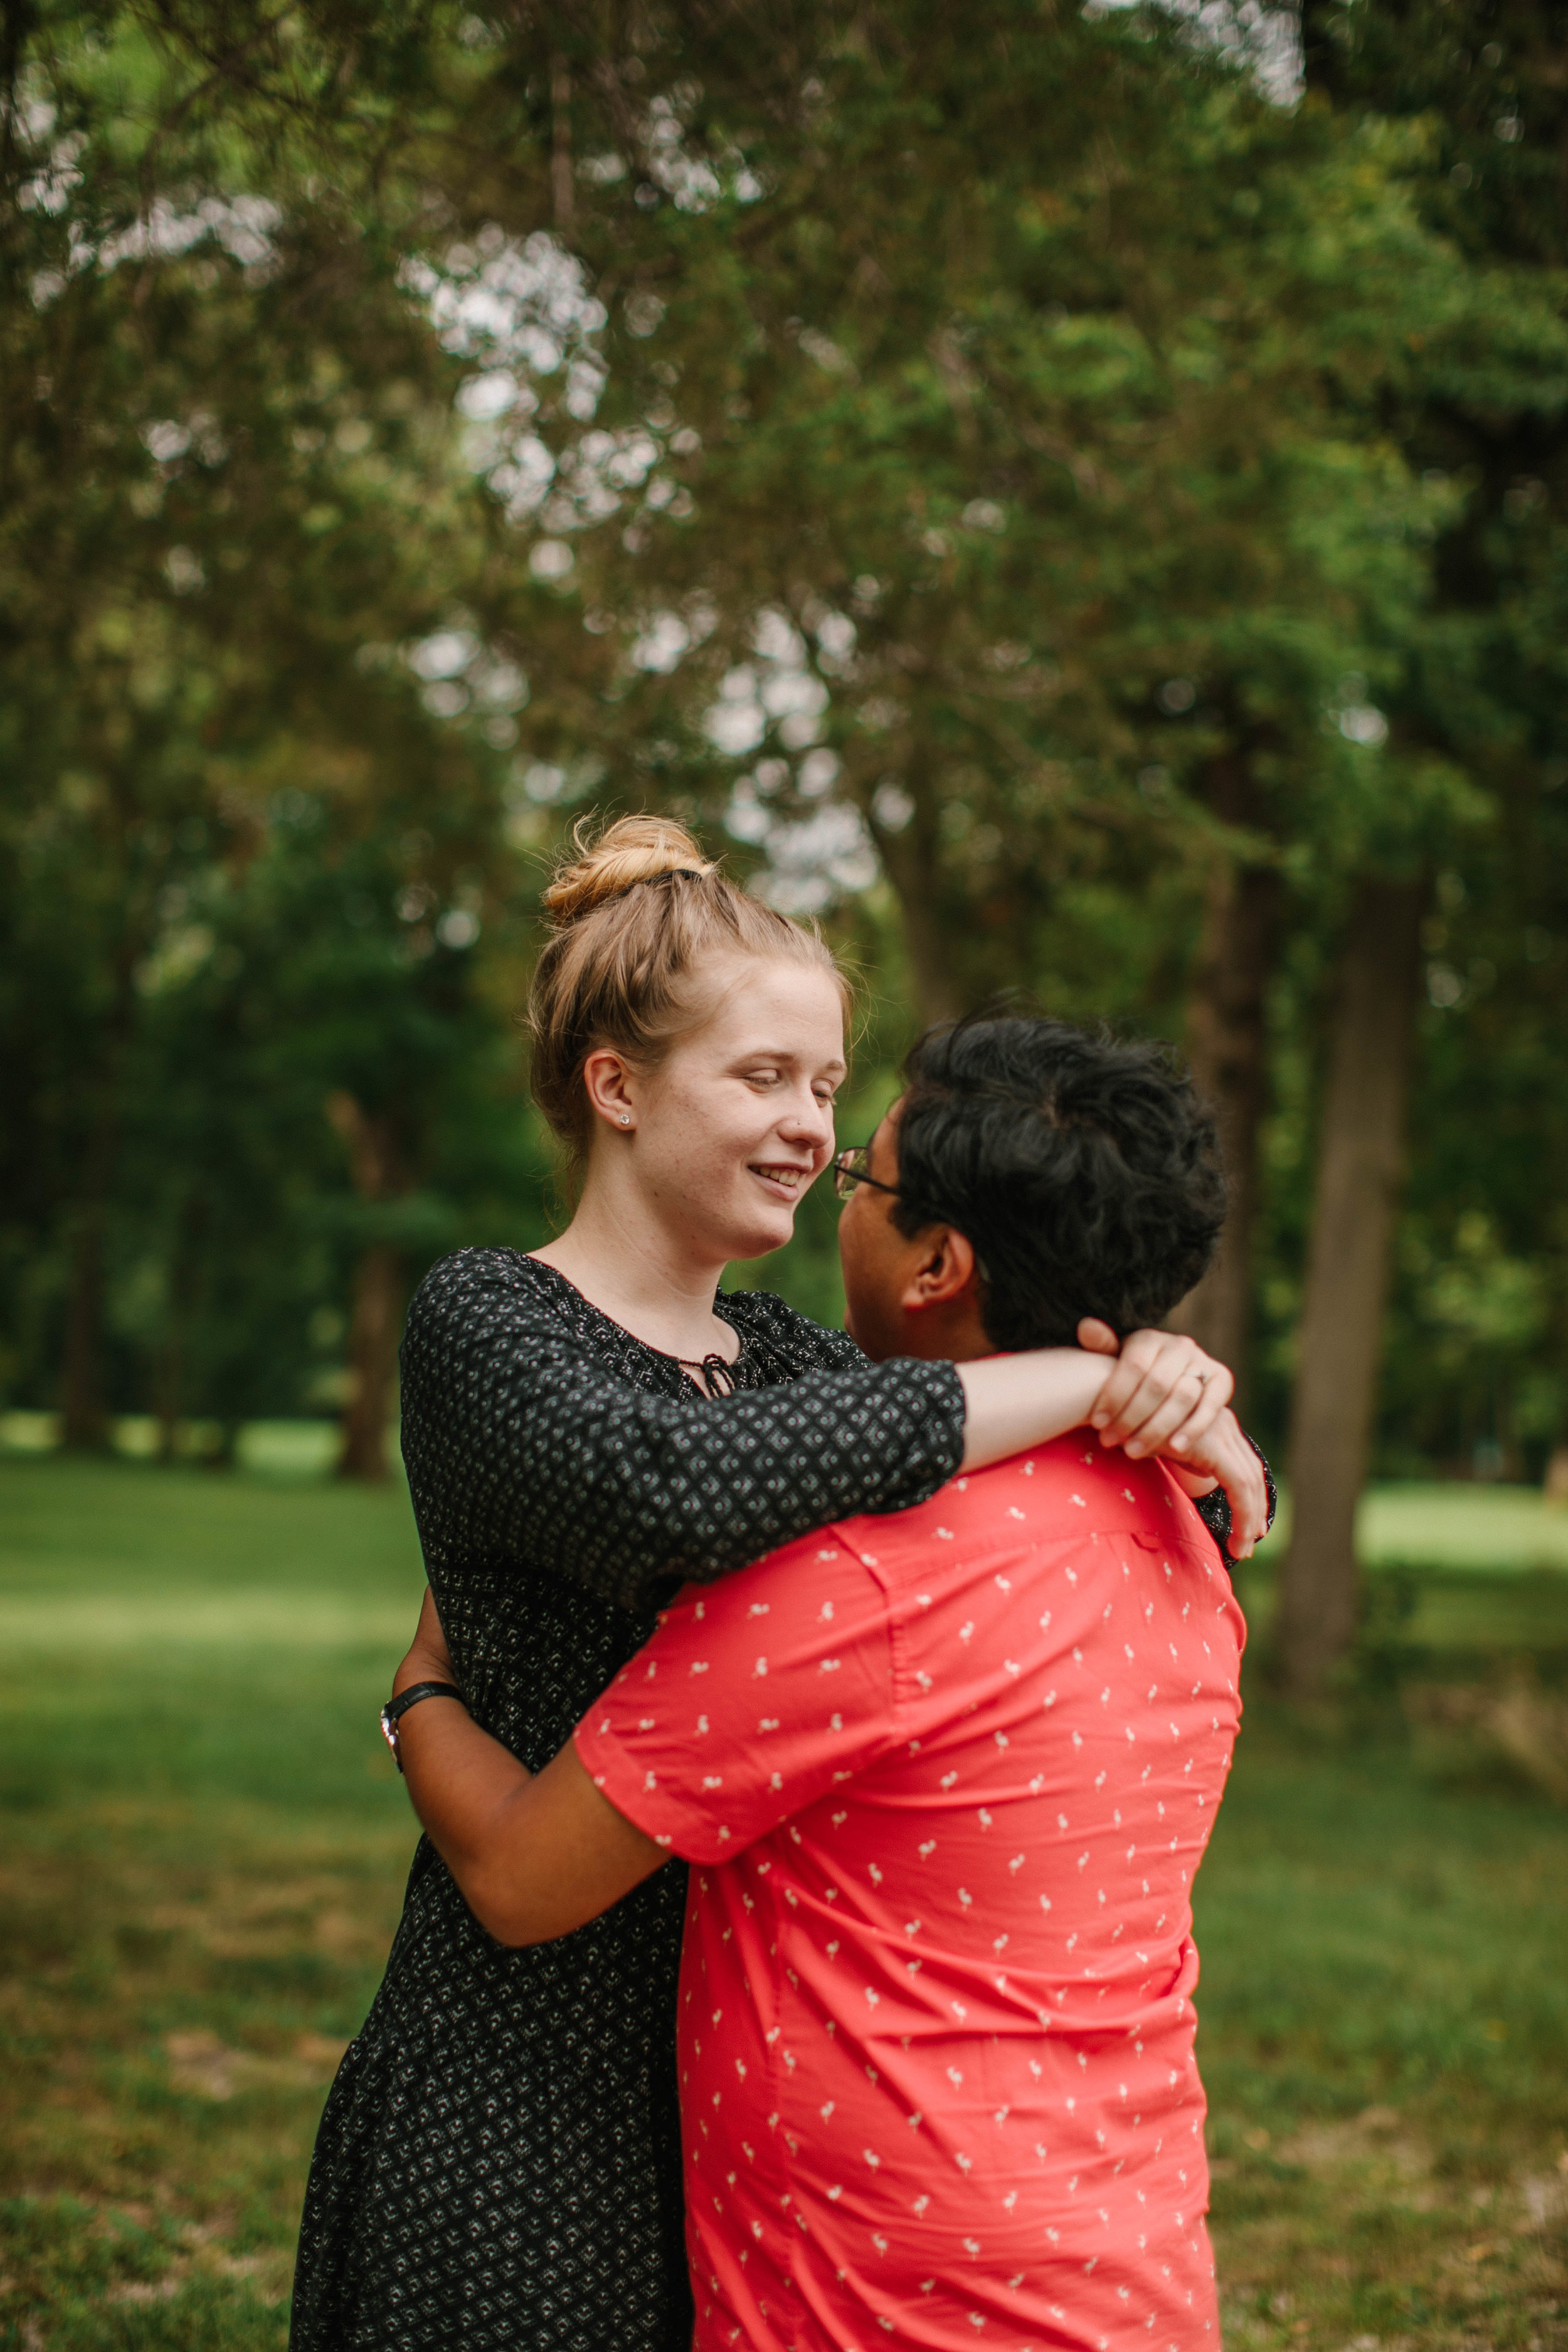 Amelia is a waterloo cedar falls wedding photographer who specializes in candid and fun engagement and wedding photography